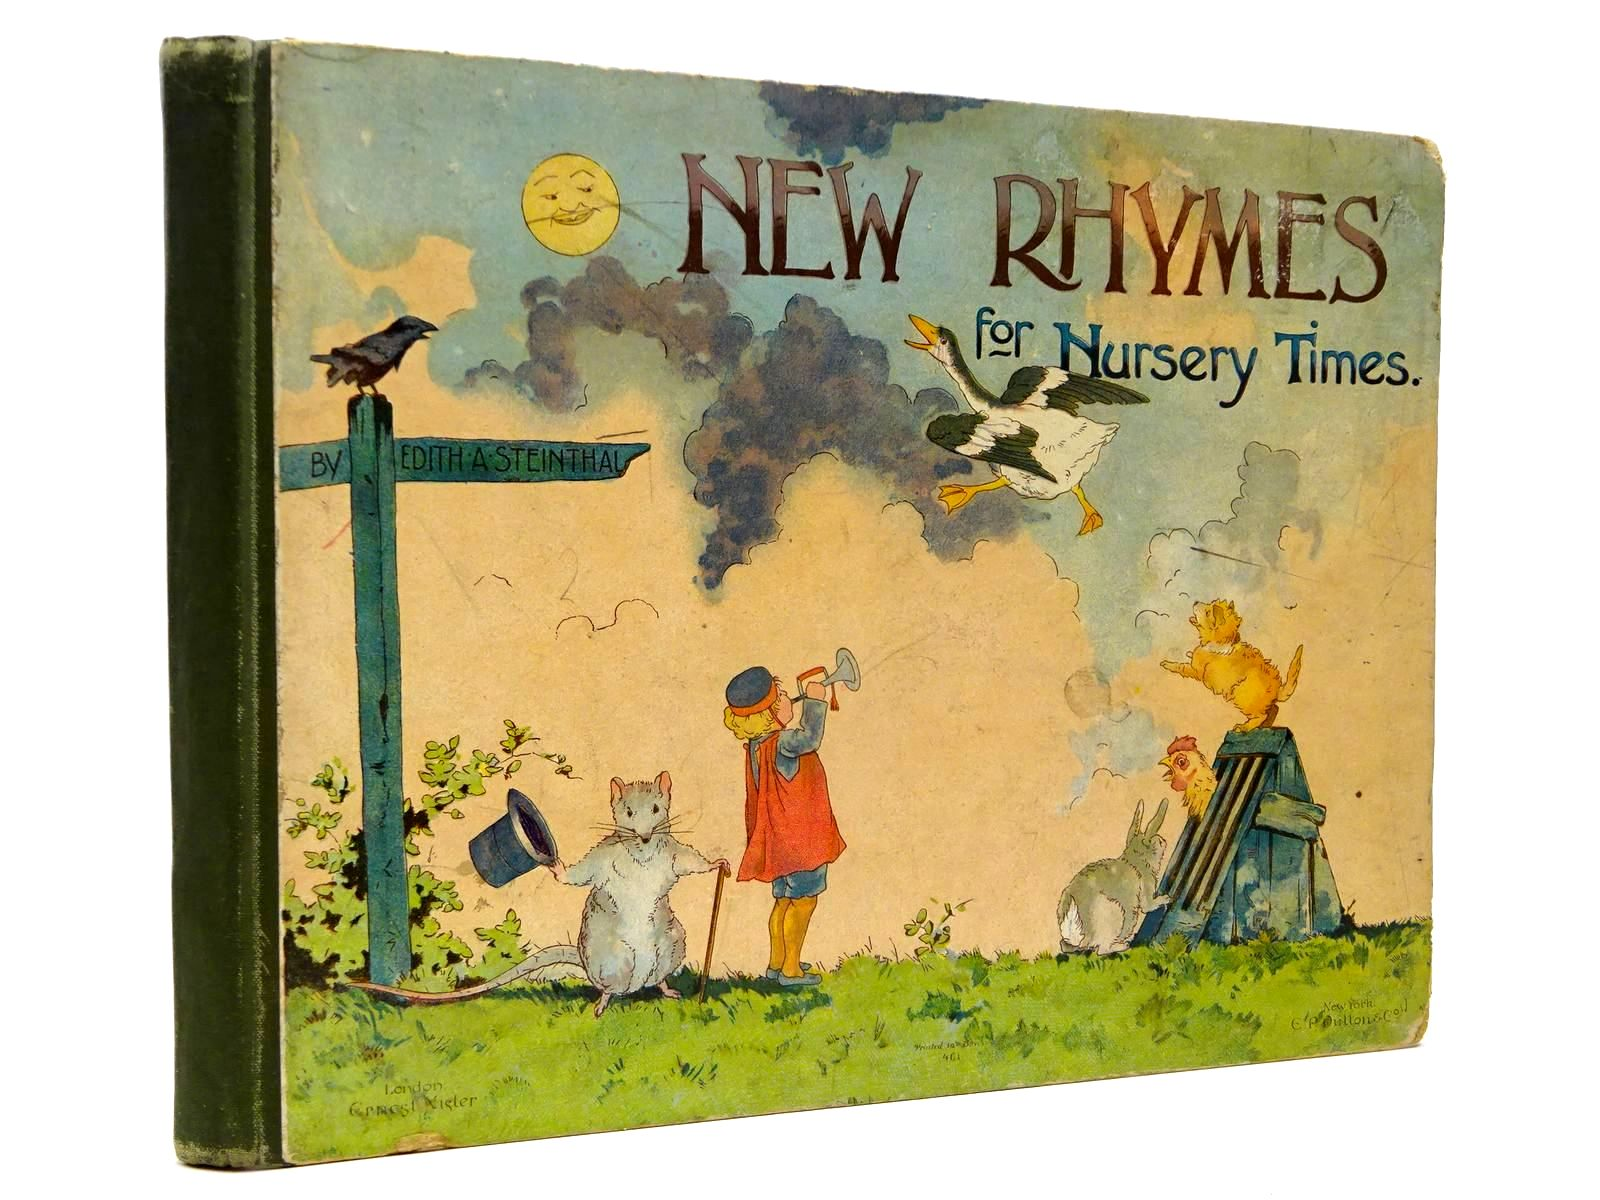 Photo of NEW RHYMES FOR NURSERY TIMES written by Steinthal, Edith A. published by E.P. Dutton & Co. (STOCK CODE: 2130363)  for sale by Stella & Rose's Books